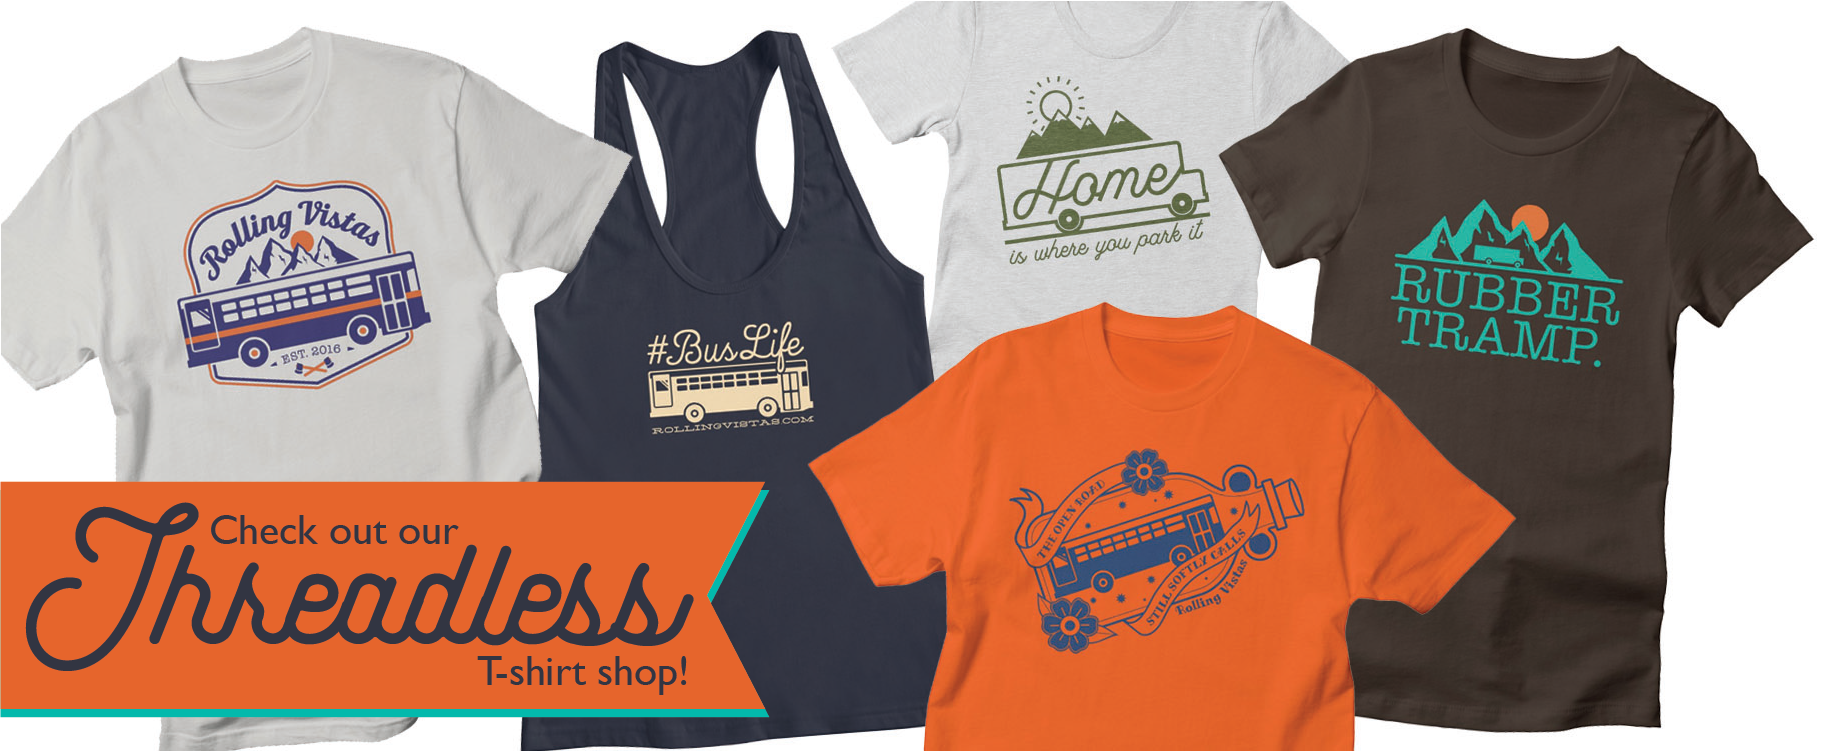 threadless banner-01.png